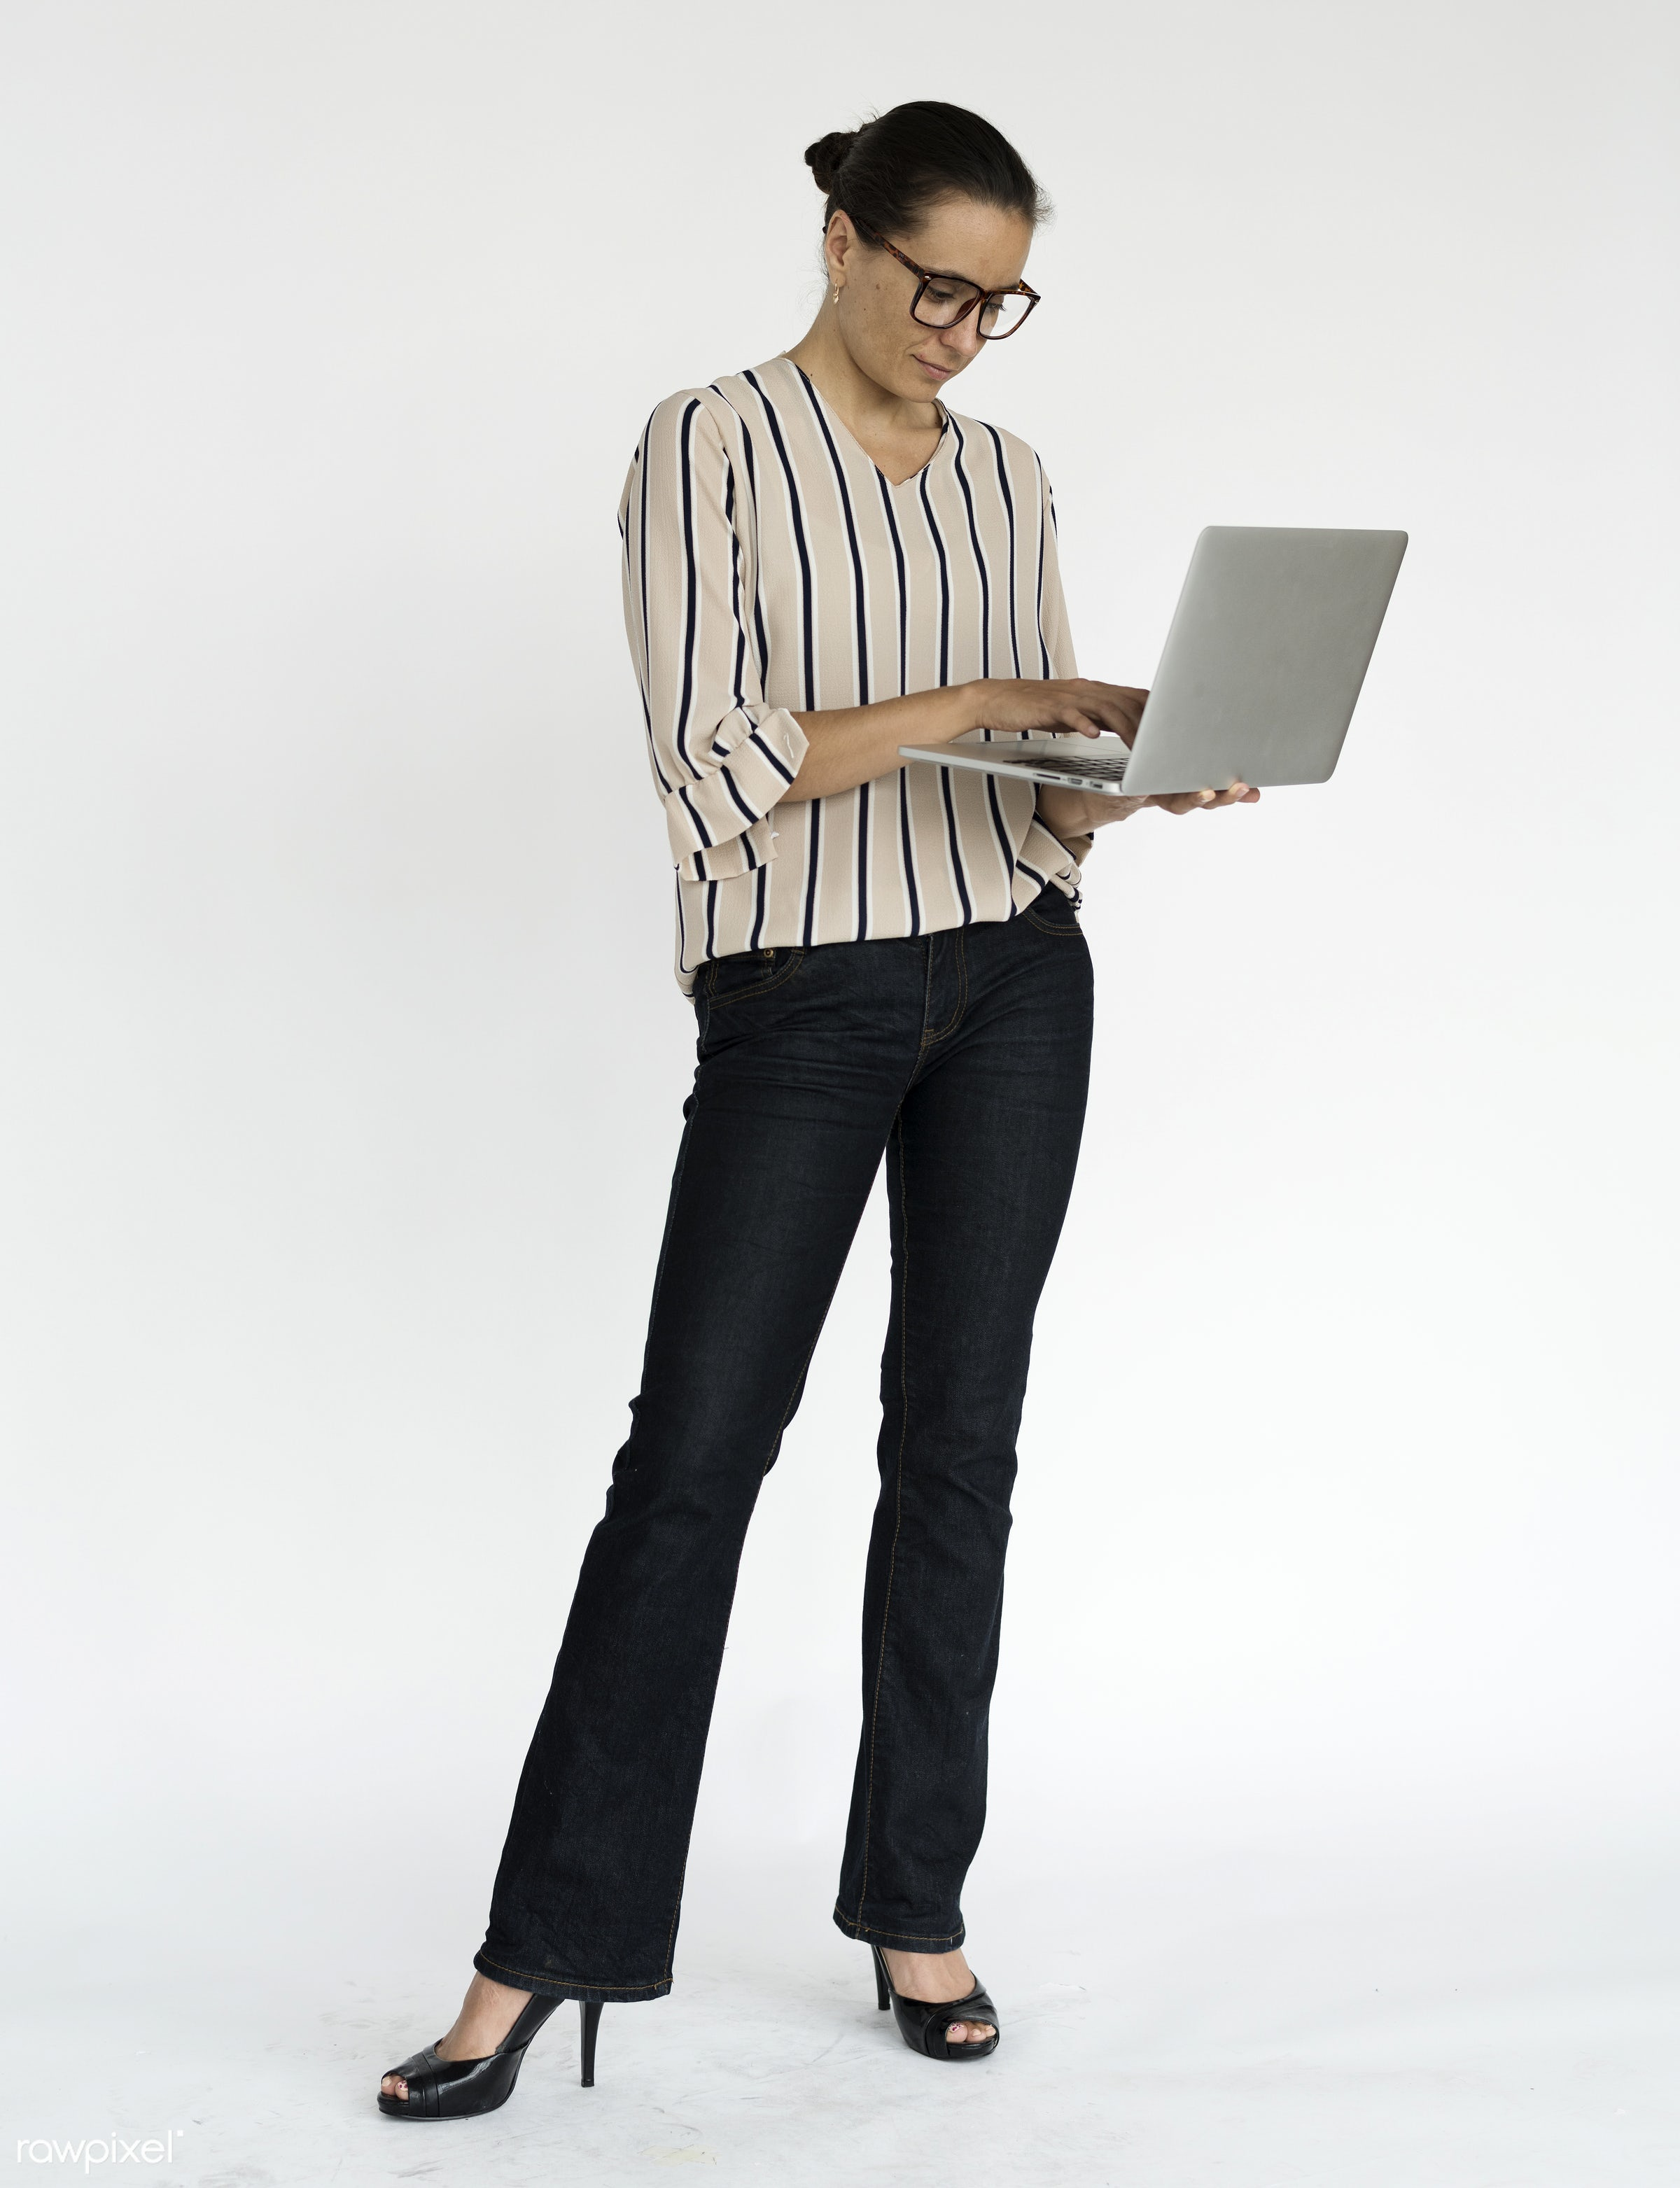 studio, expression, using, person, technology, holding, people, caucasian, woman, lifestyle, laptop, smile, positive,...